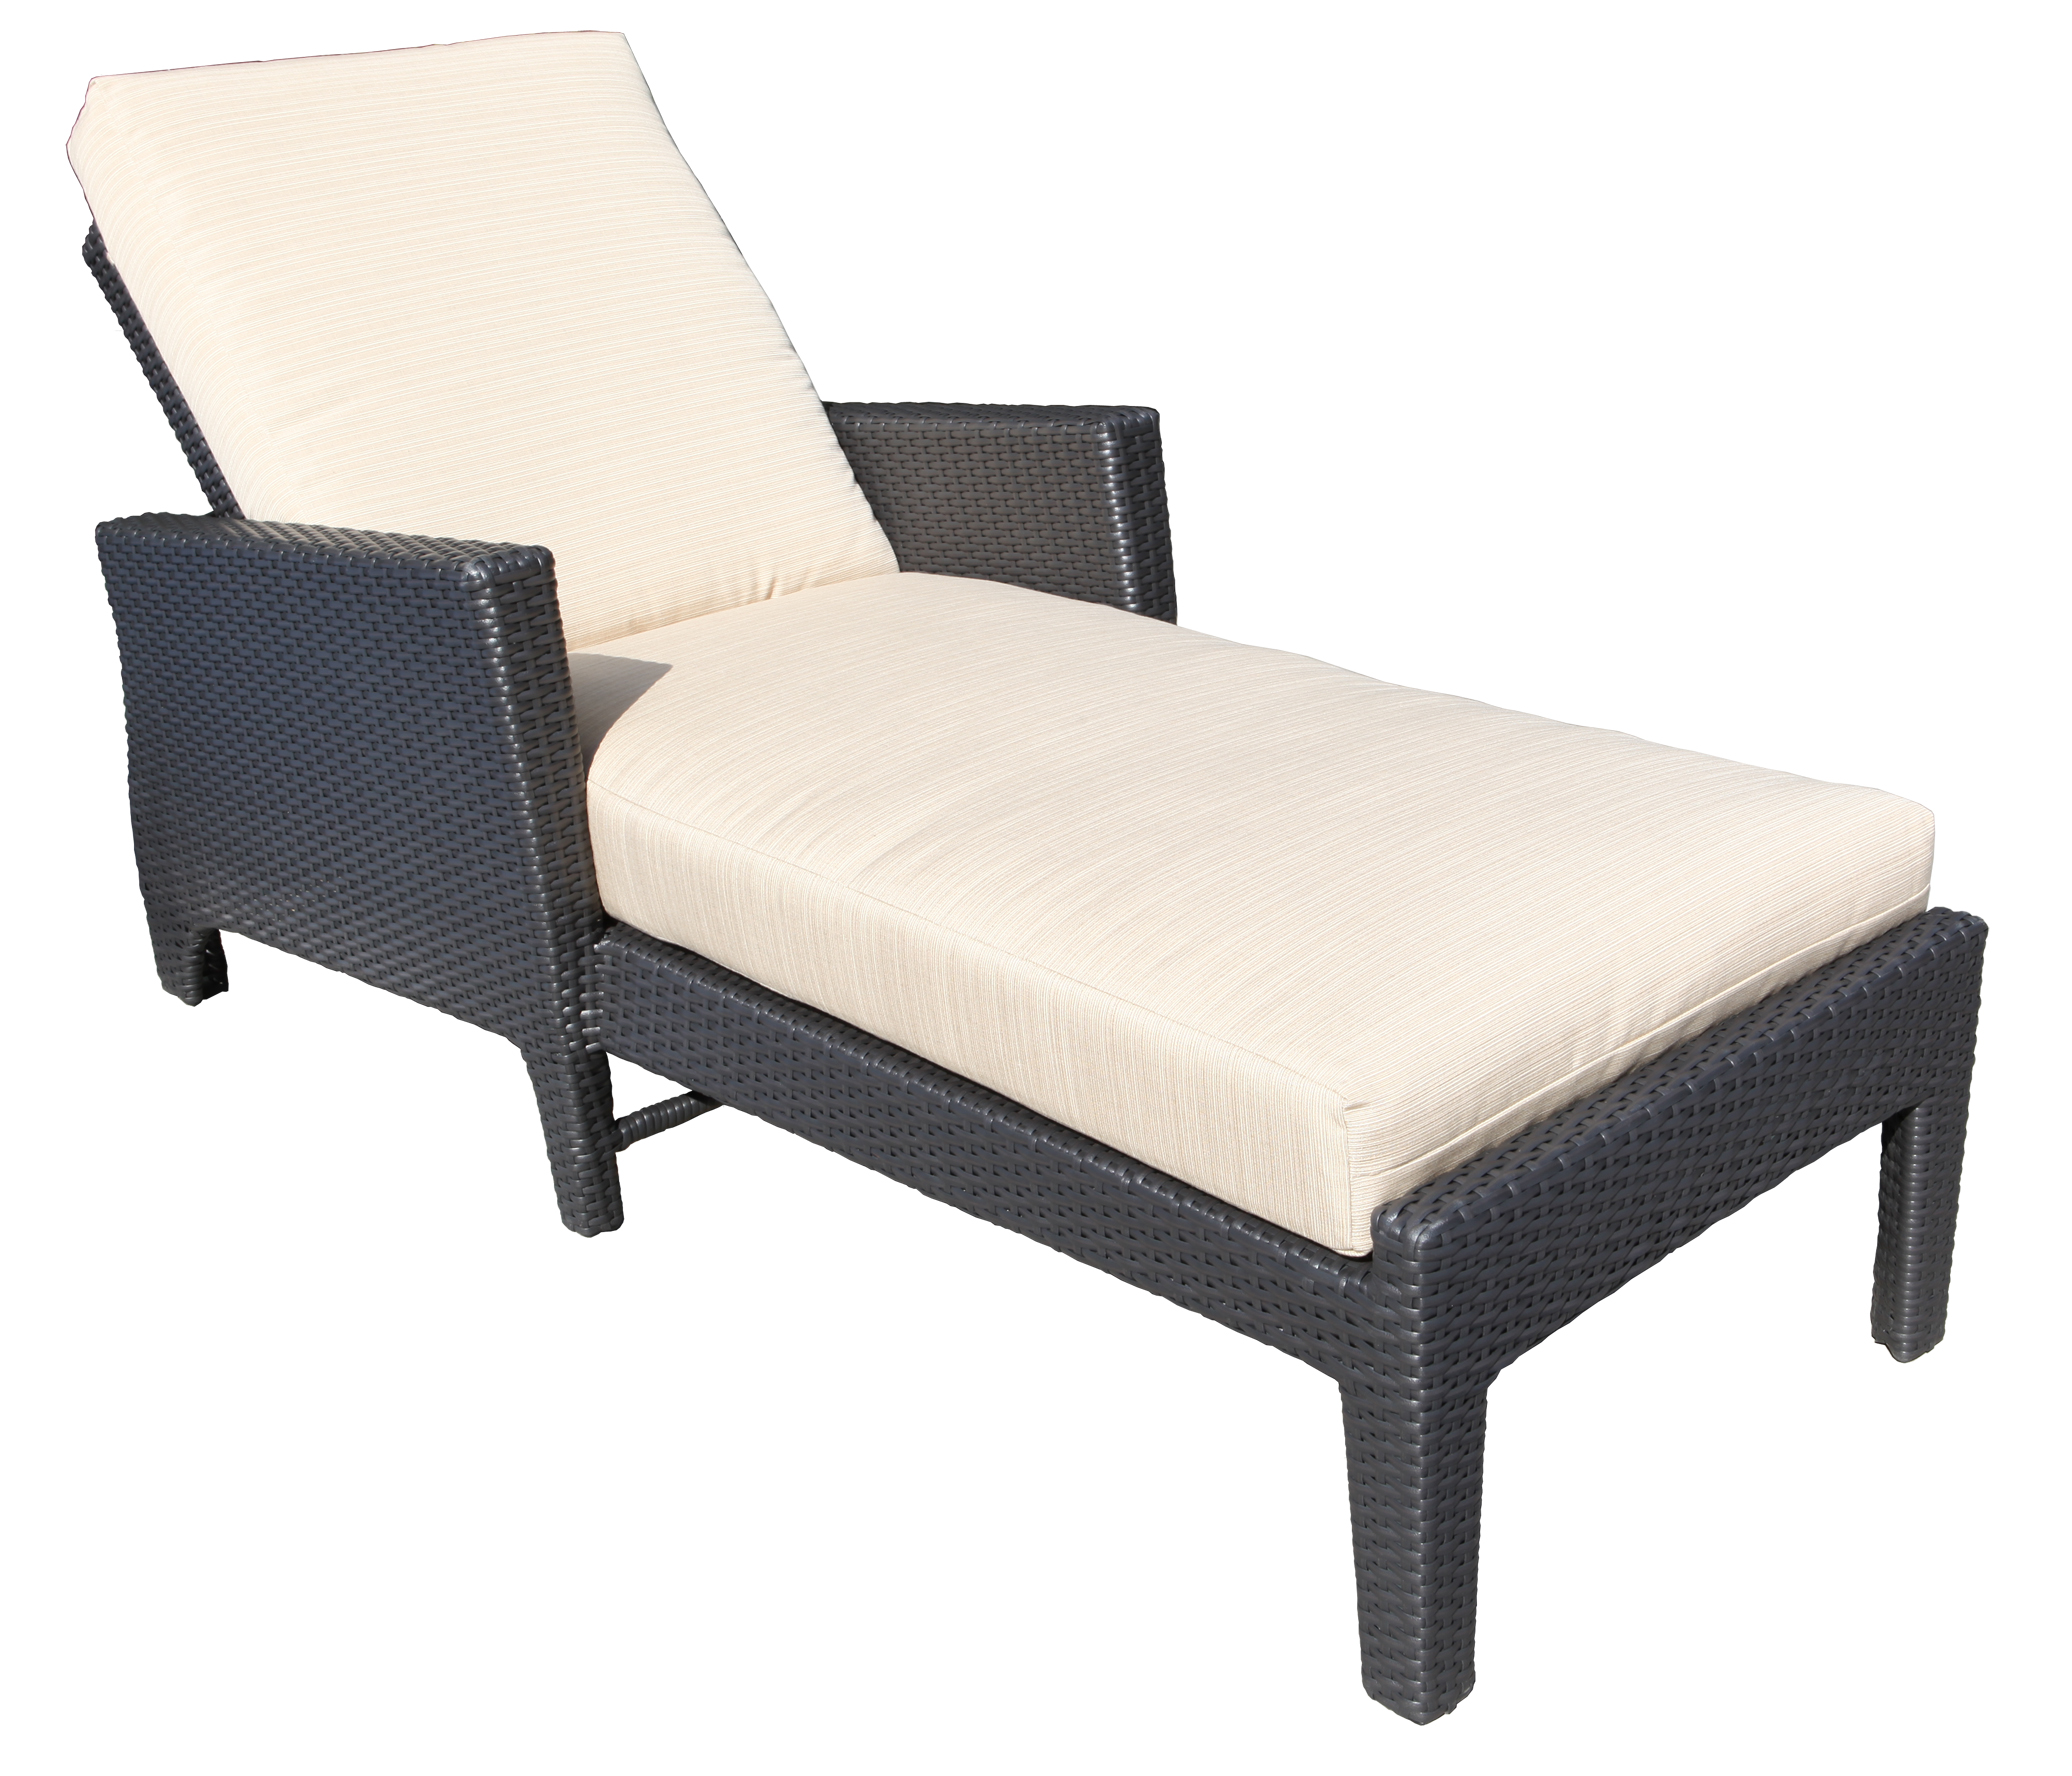 Outdoor Patio Furniture Toronto: Bimini Wicker Deep Seating Chaise Lounge